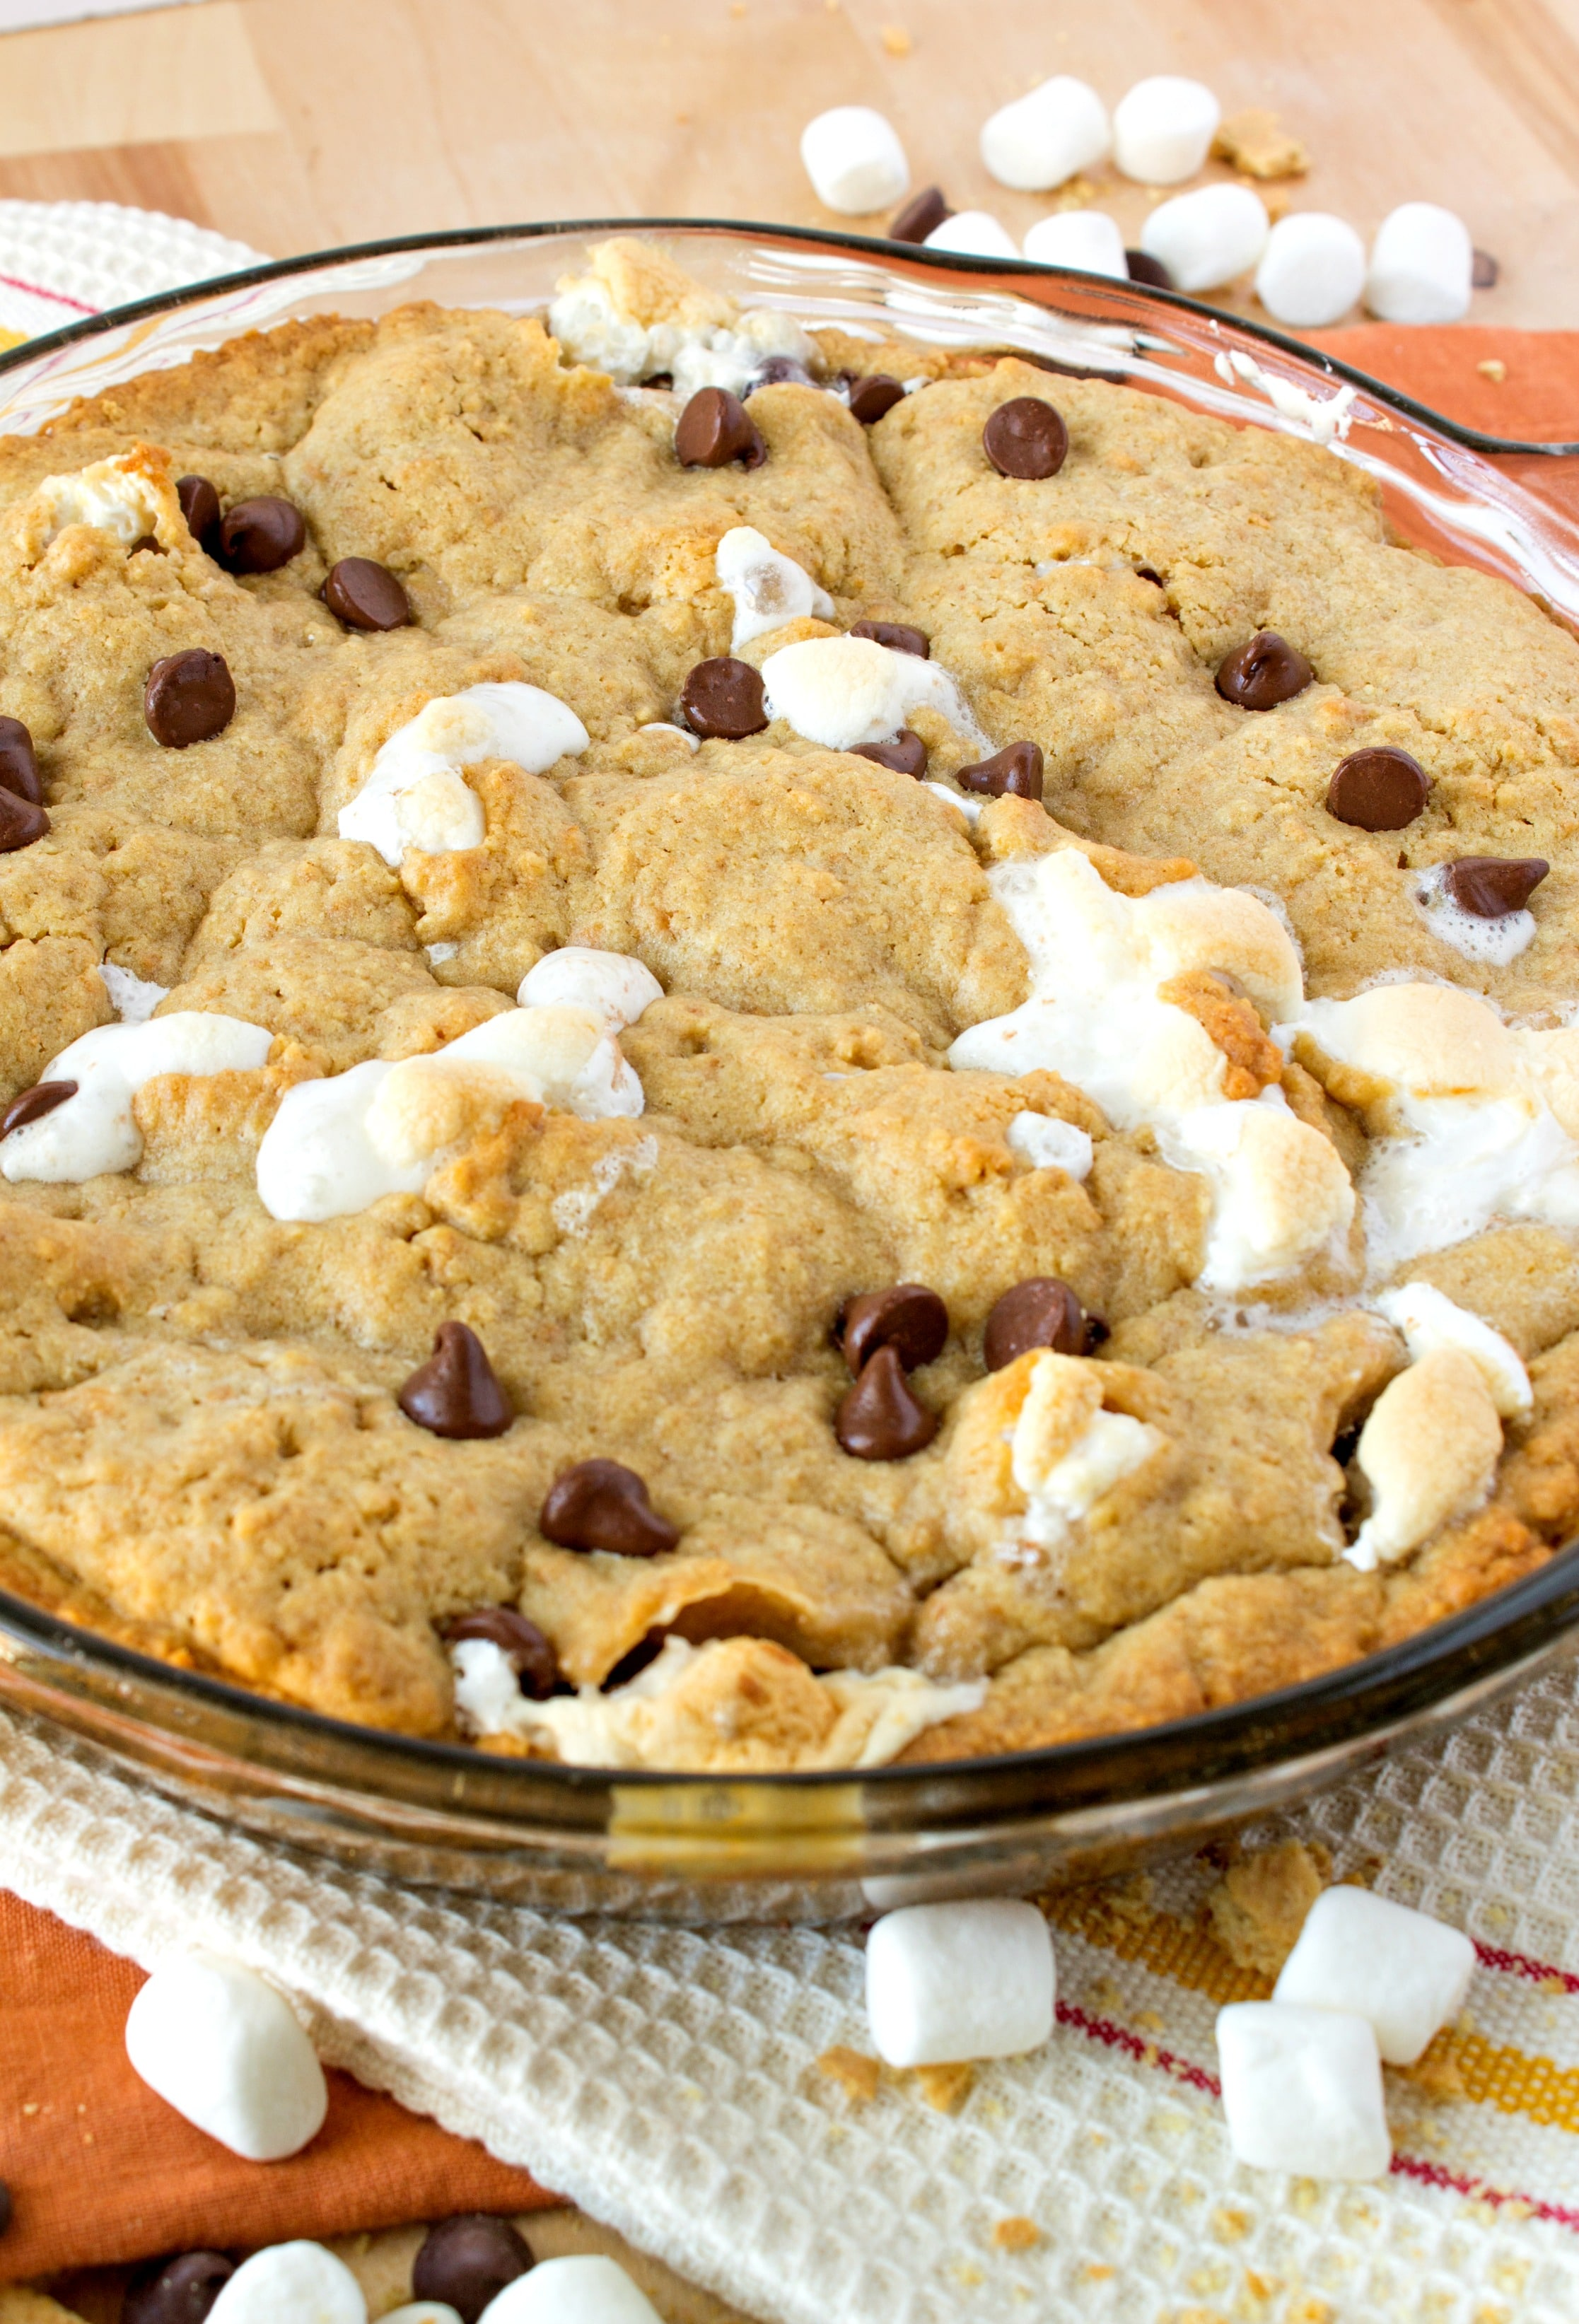 S'mores Cookie Cake -Your favorite campfire snack, now in cookie cake form! The crust is made from brown sugar cookie and graham crackers and filled with tons of chocolate and marshmallow. This dessert is sure to impress kids and adults alike!